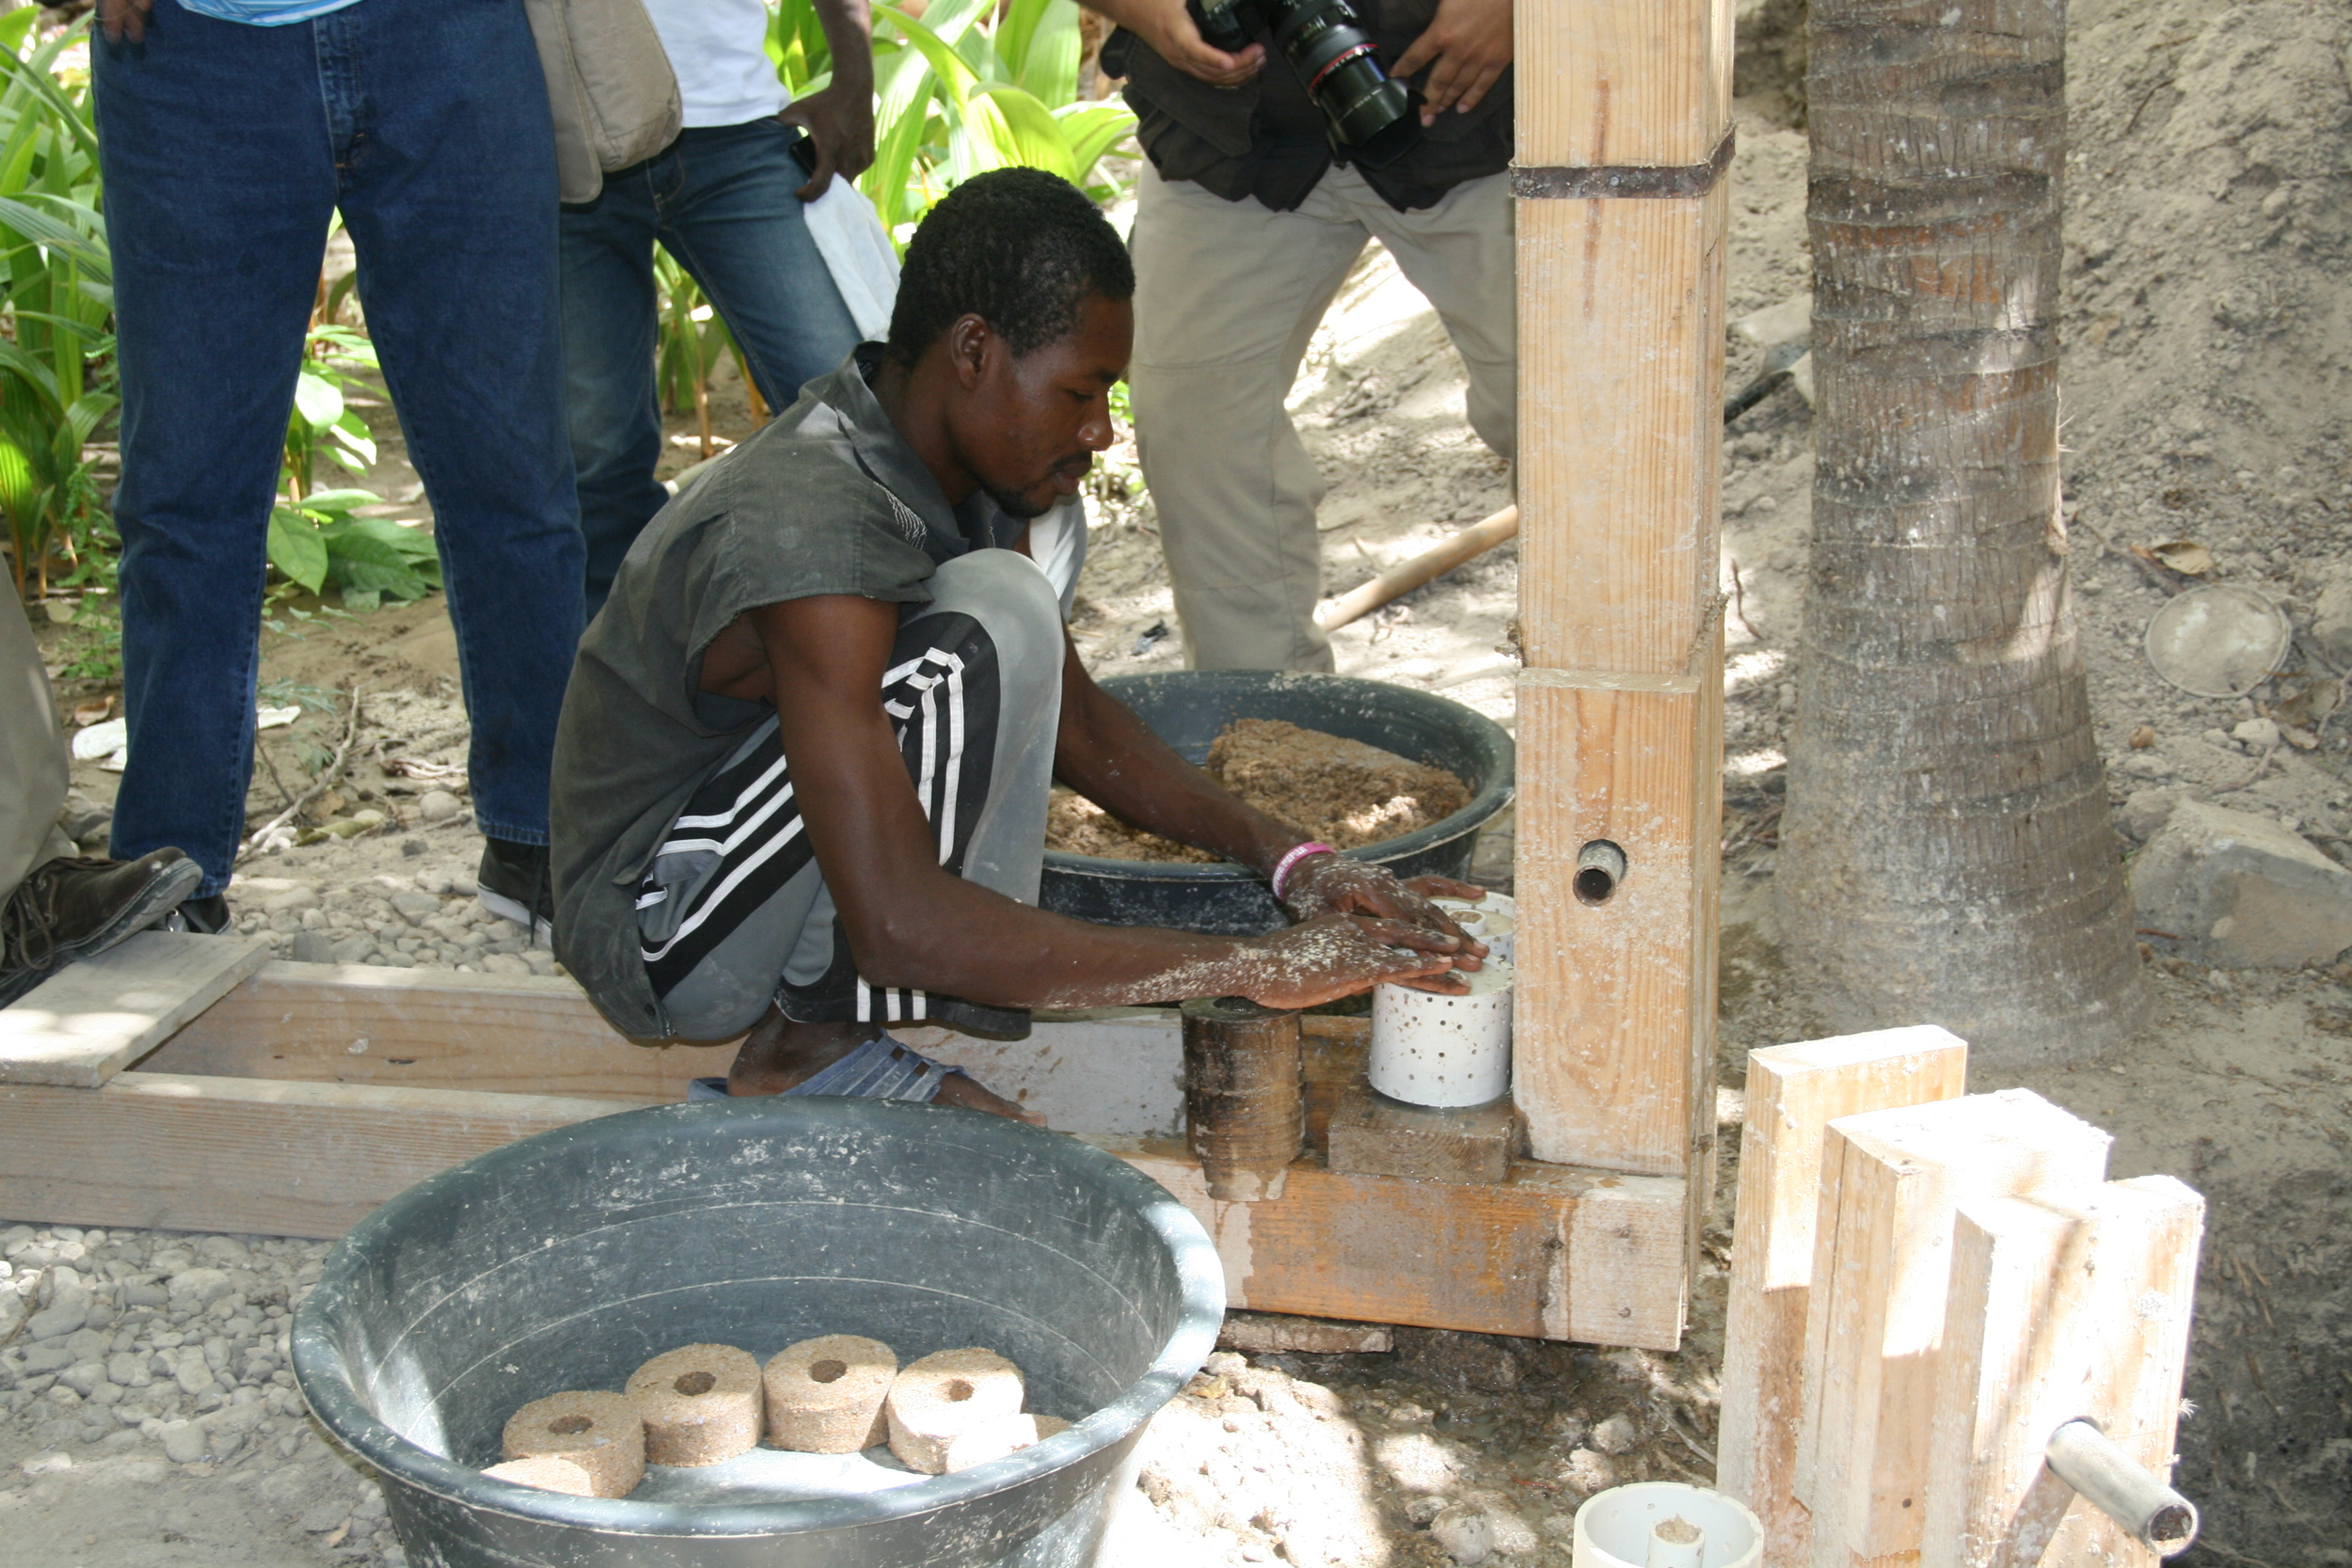 Making briquettes from recycled trash